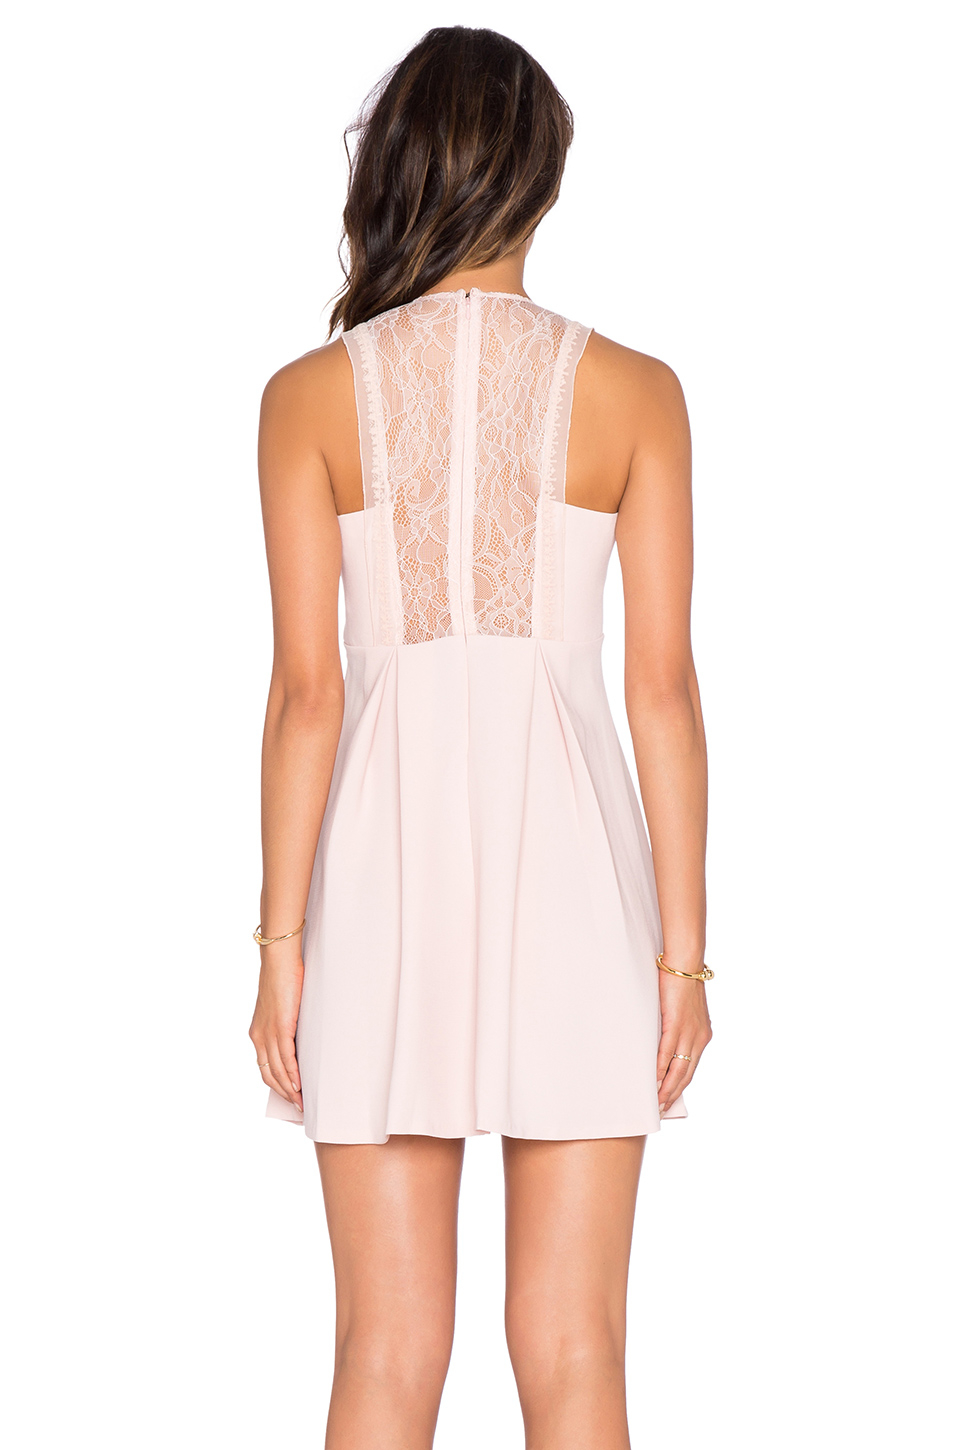 Bcbgeneration Lace Fit Amp Flare Dress In Rose Smoke Pink